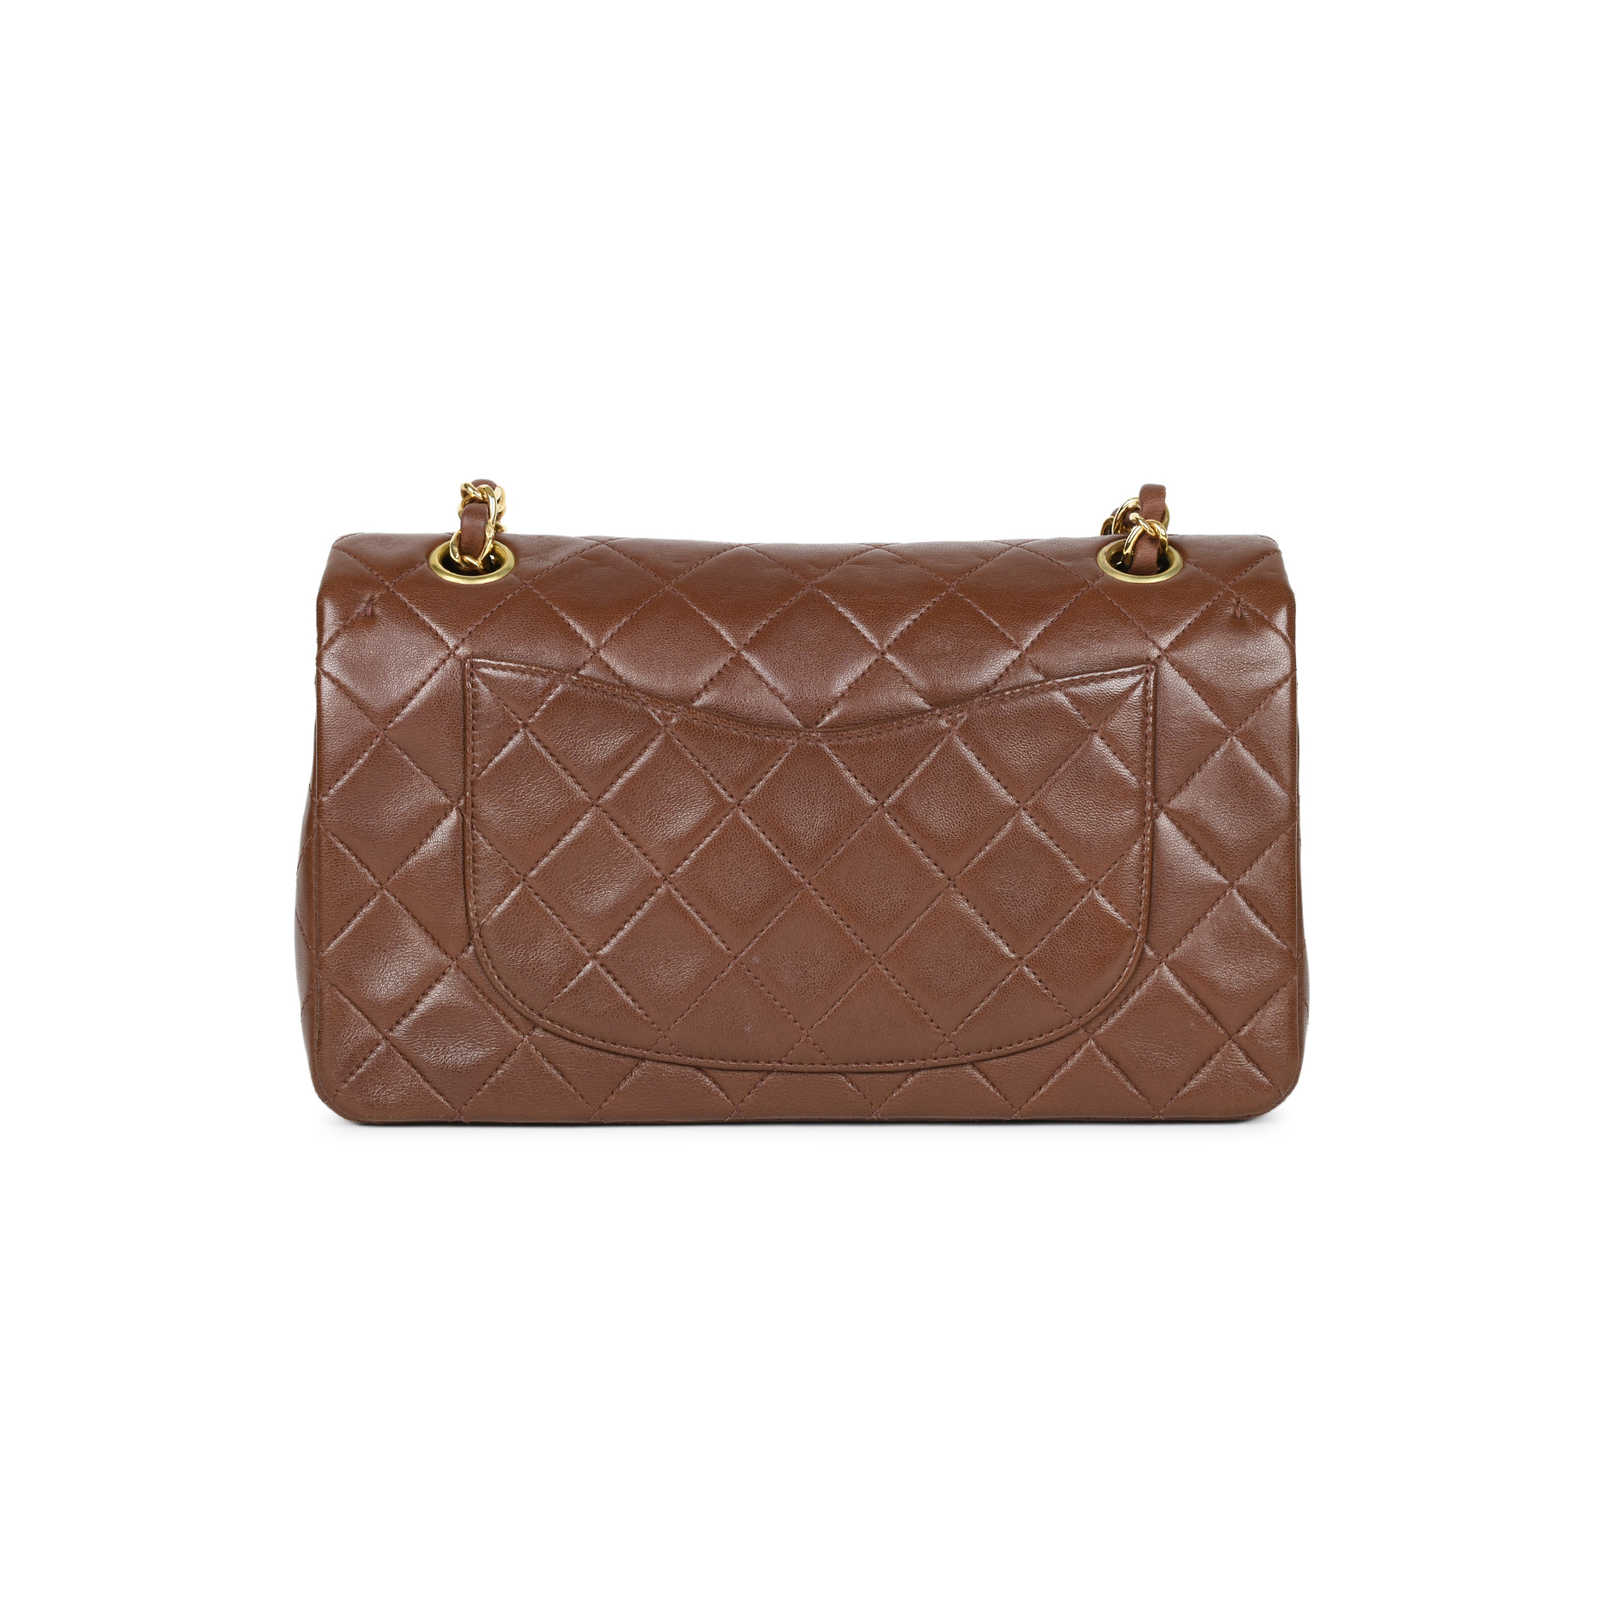 2bbe46fe9733a6 ... Authentic Second Hand Chanel Brown Small Classic Flap Bag  (PSS-051-00378) ...